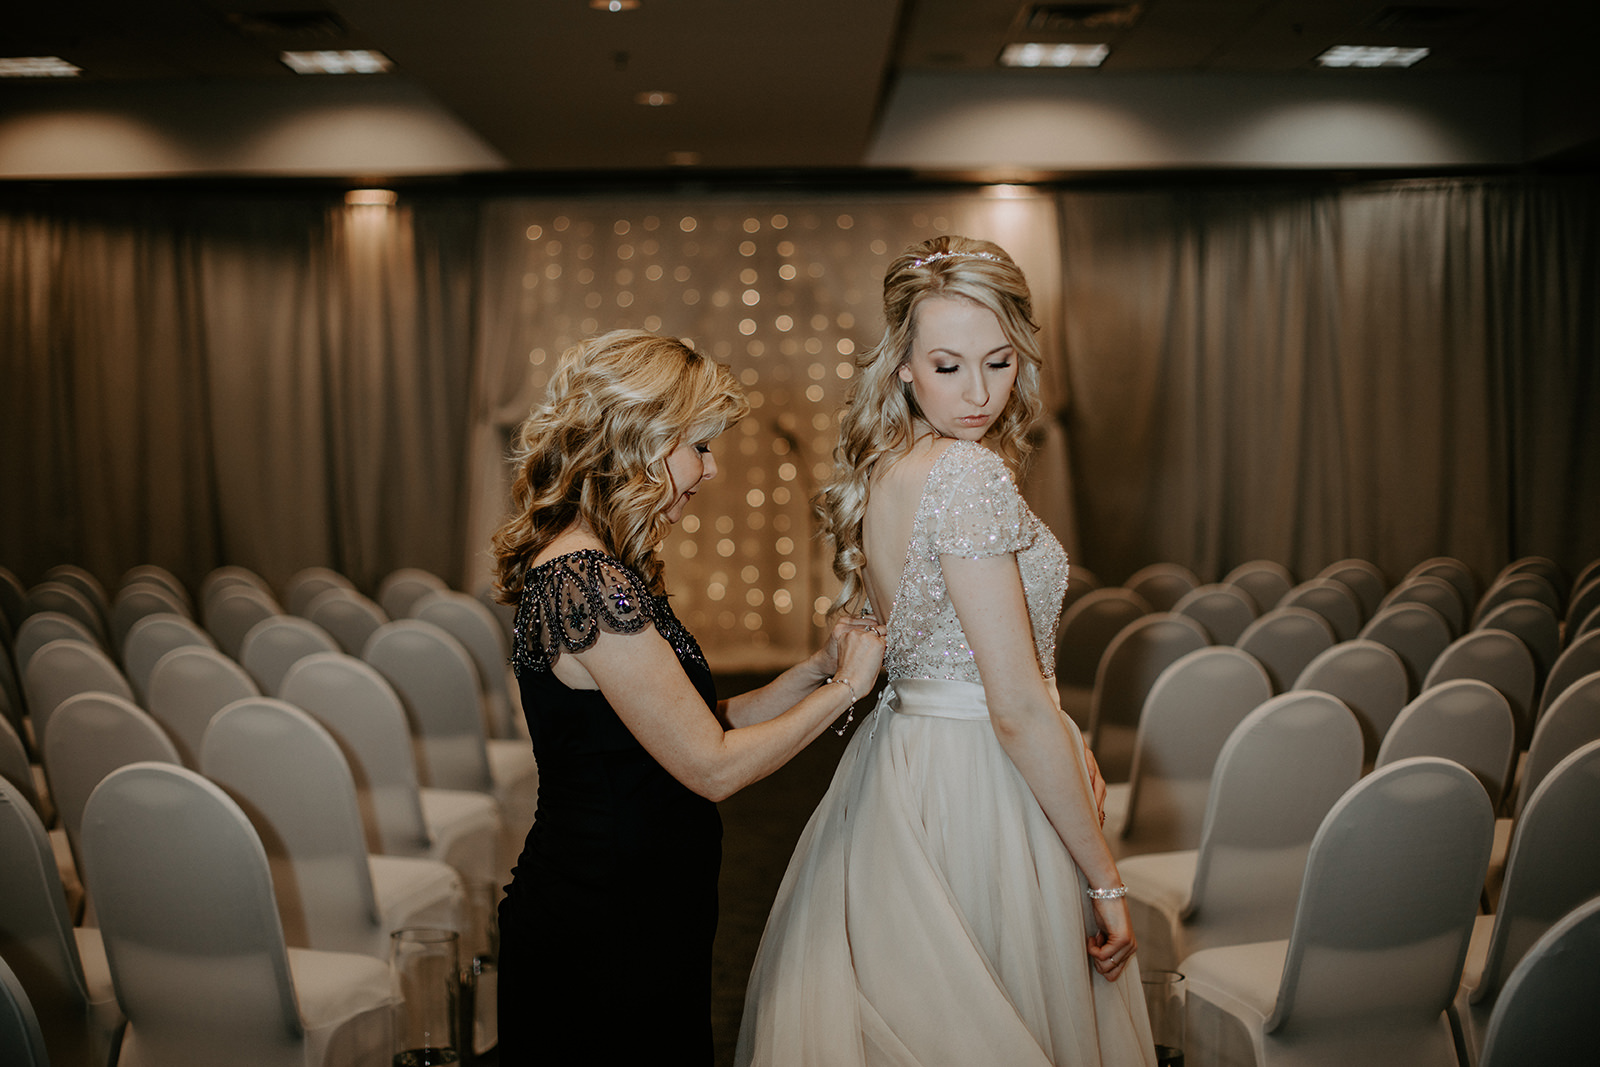 Mom buttoning bride's dress from behind in front of indoor ceremony site